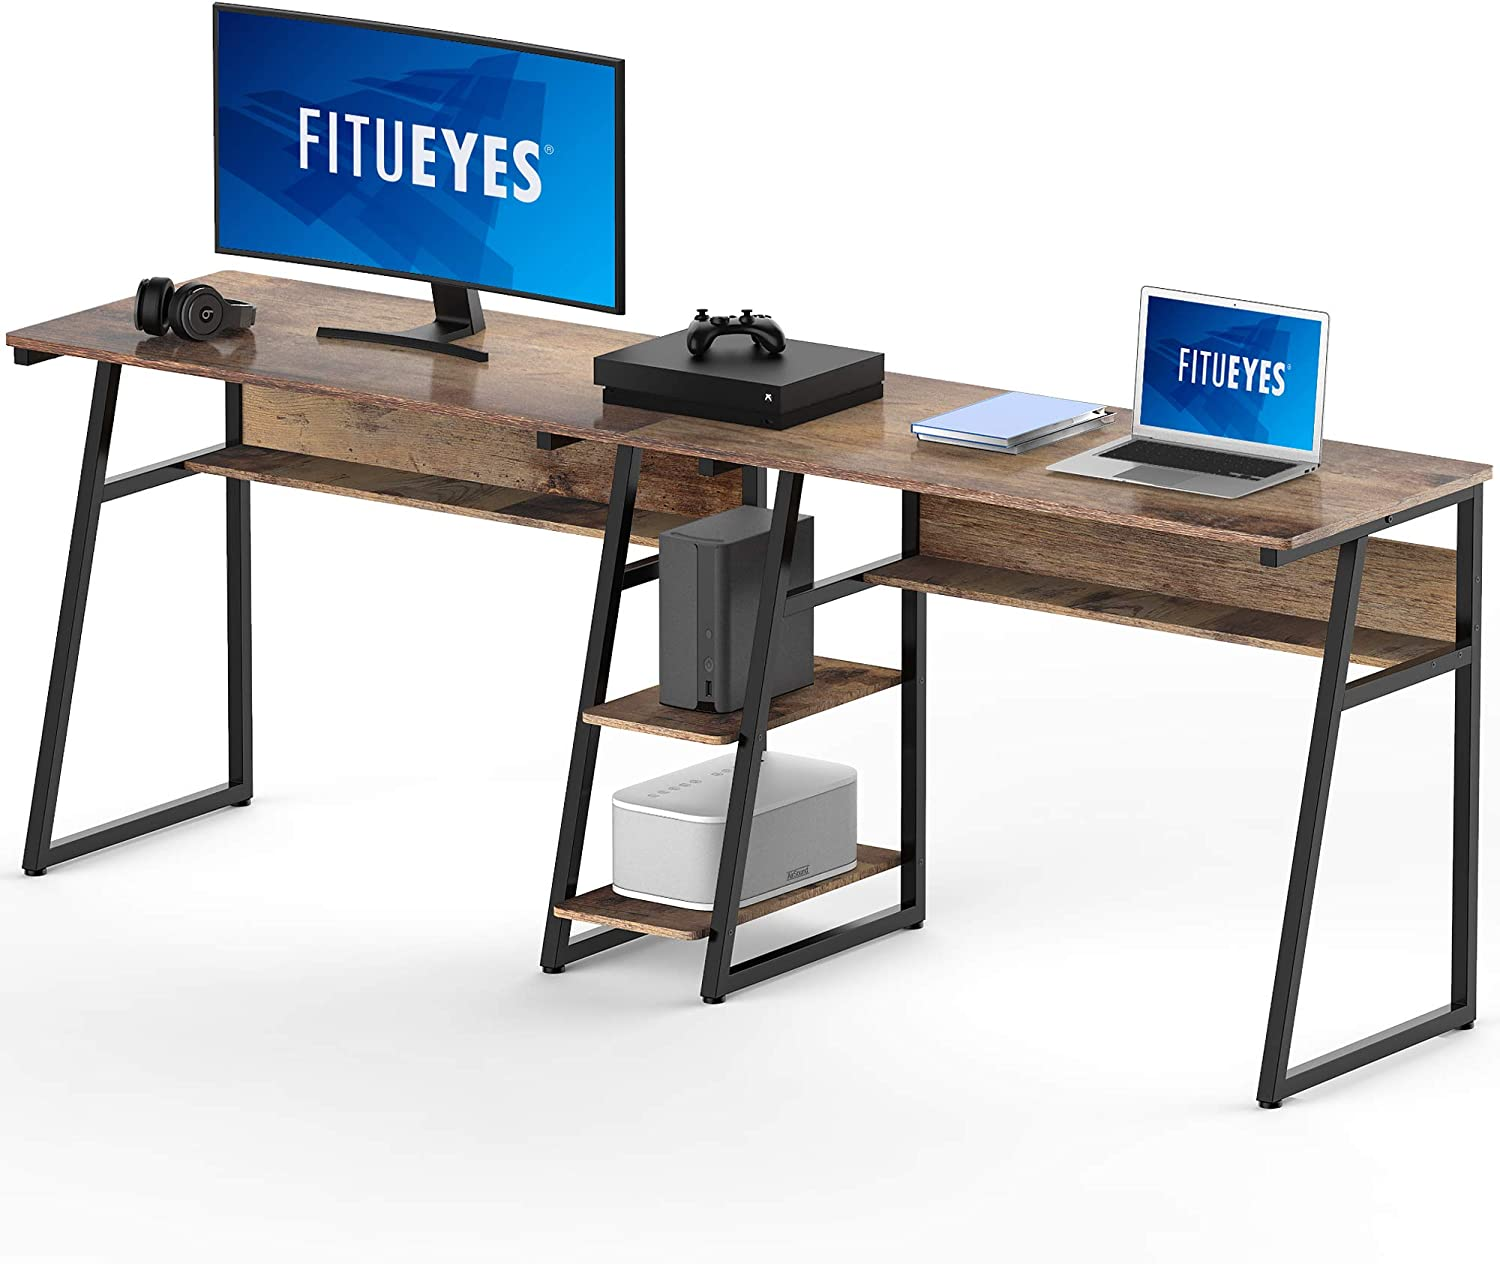 FITUEYES Opening large release sale Double Computer Desk with inch Shelves Storage Two Selling rankings 81